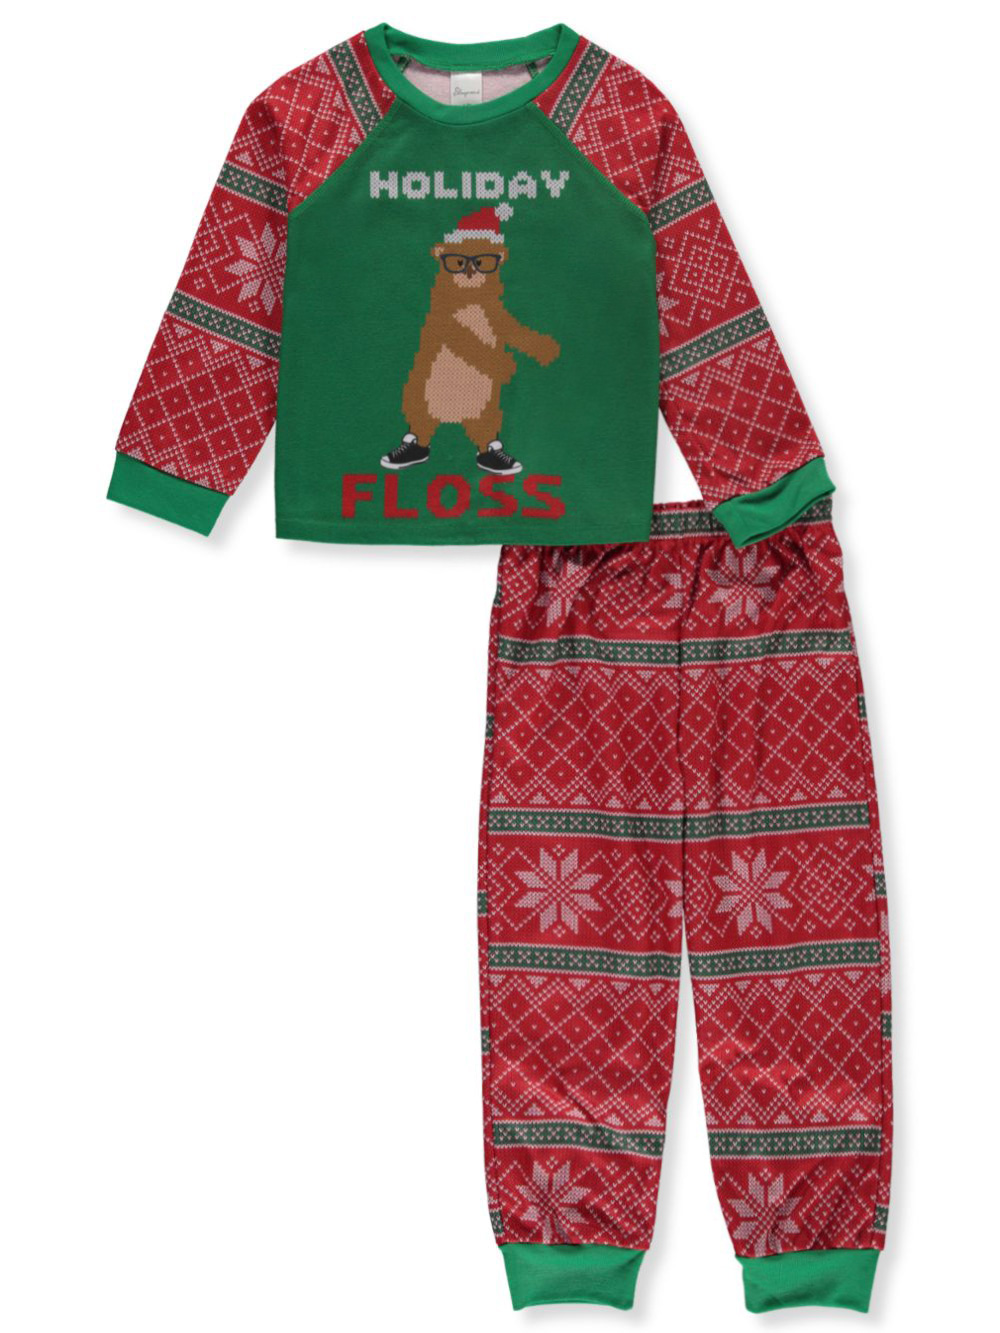 Boys Green Sleepwear